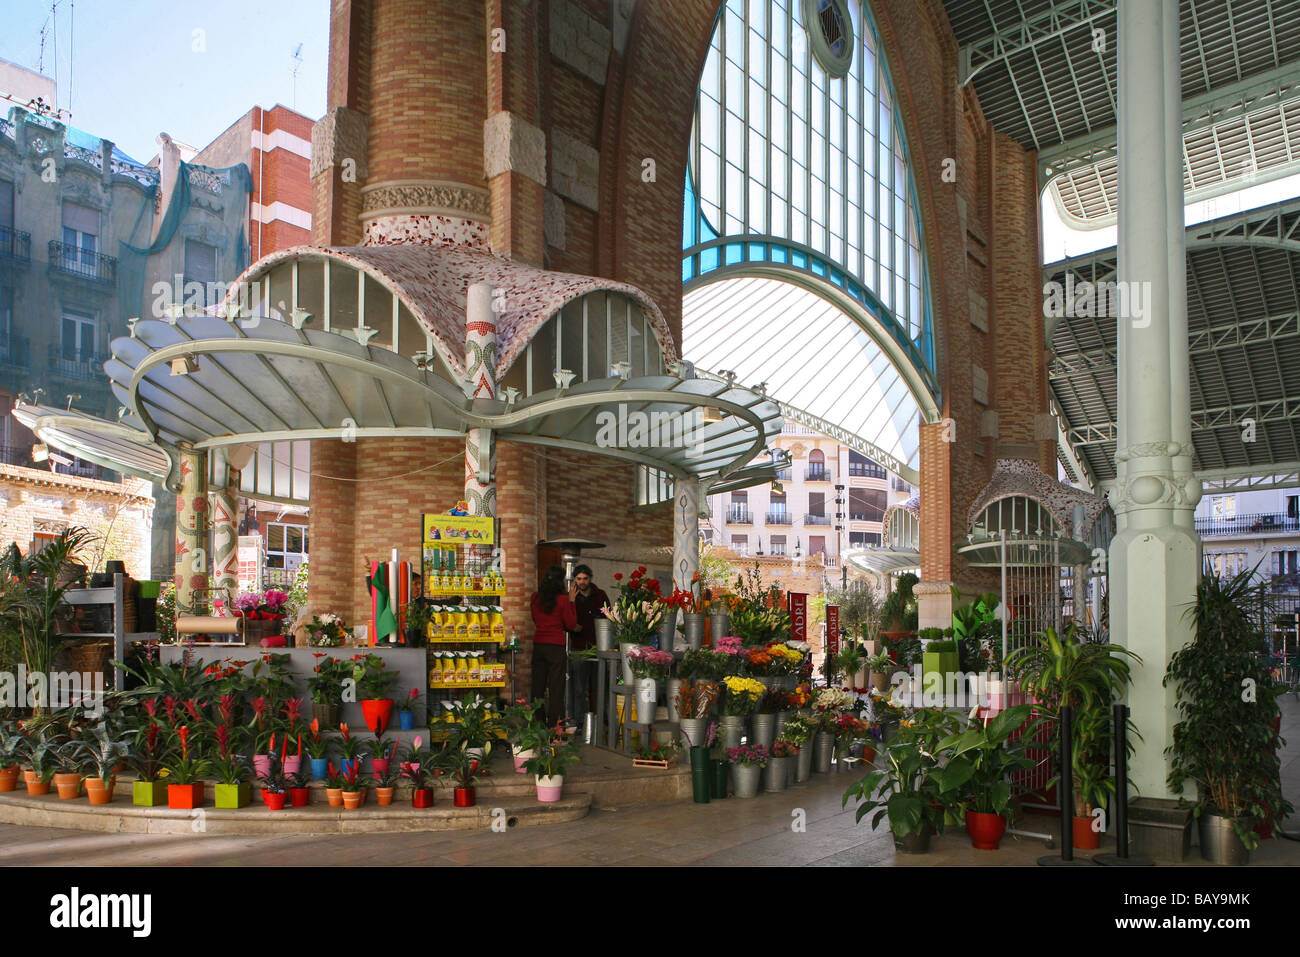 Mercado de Colon, opened in 1916, 2003 refurbished with cafes, Valencia, Spain - Stock Image